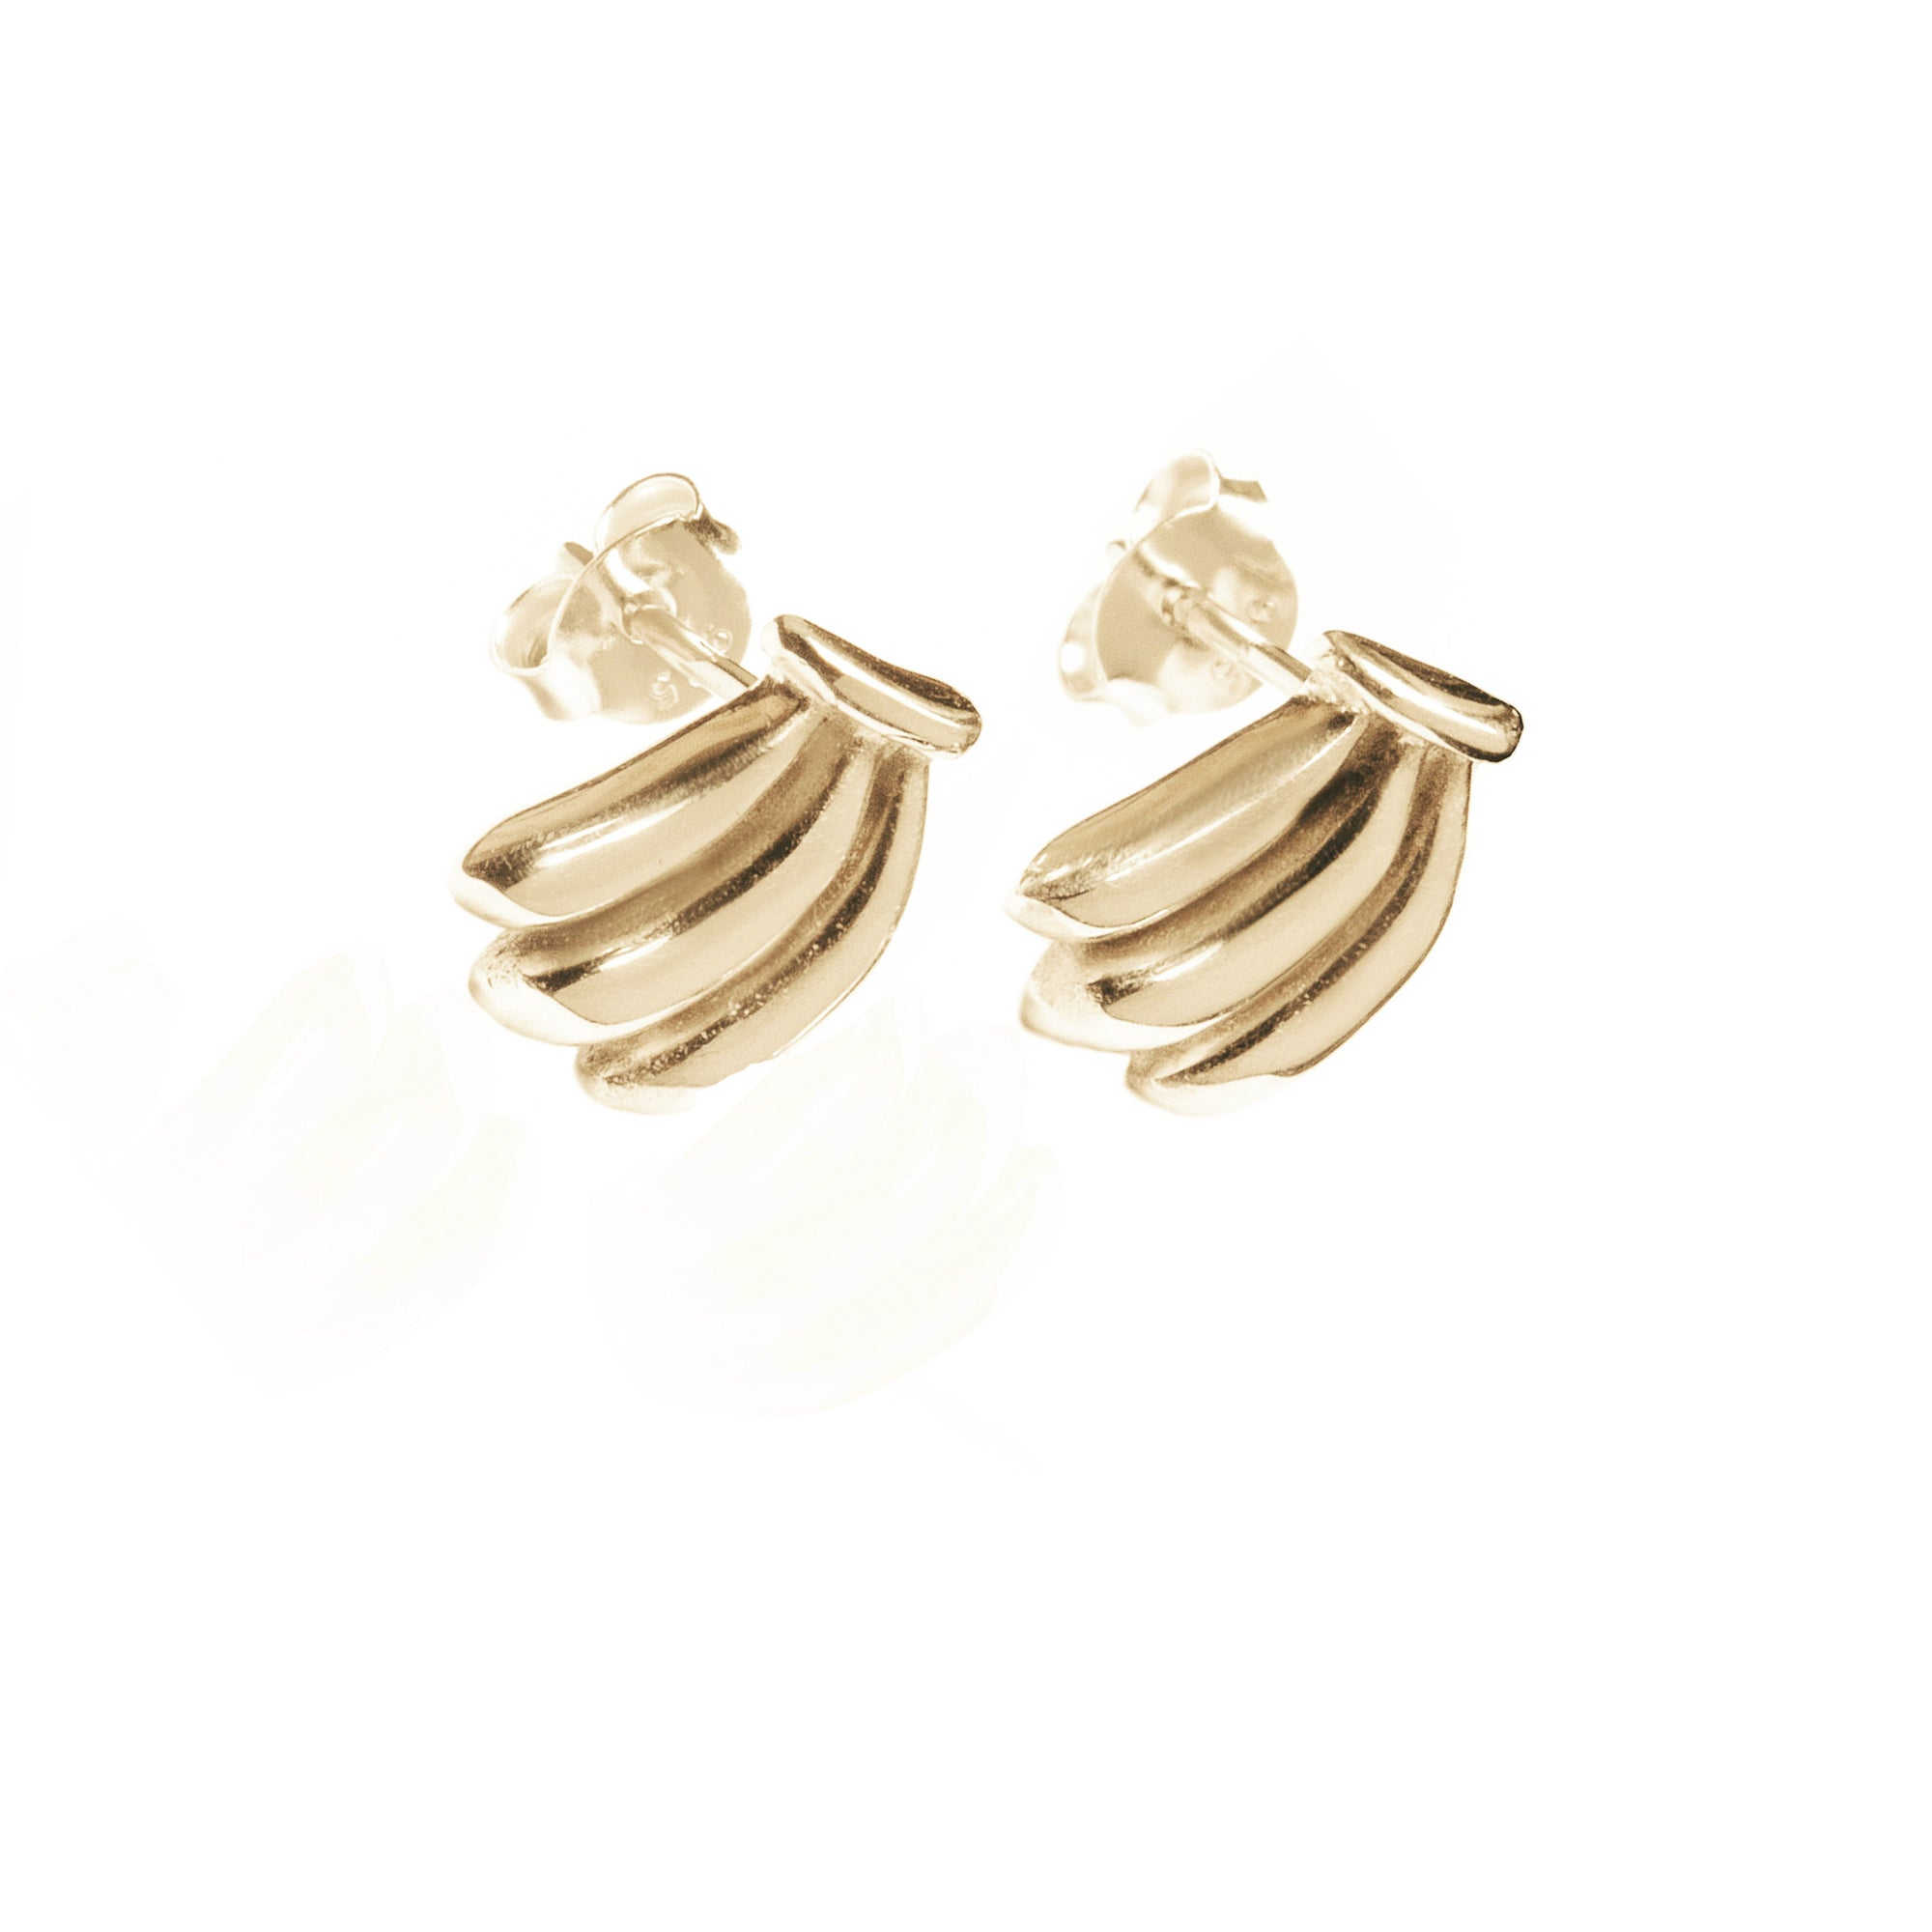 Luna & Rose - You Drive me Bananas Earrings - Gold